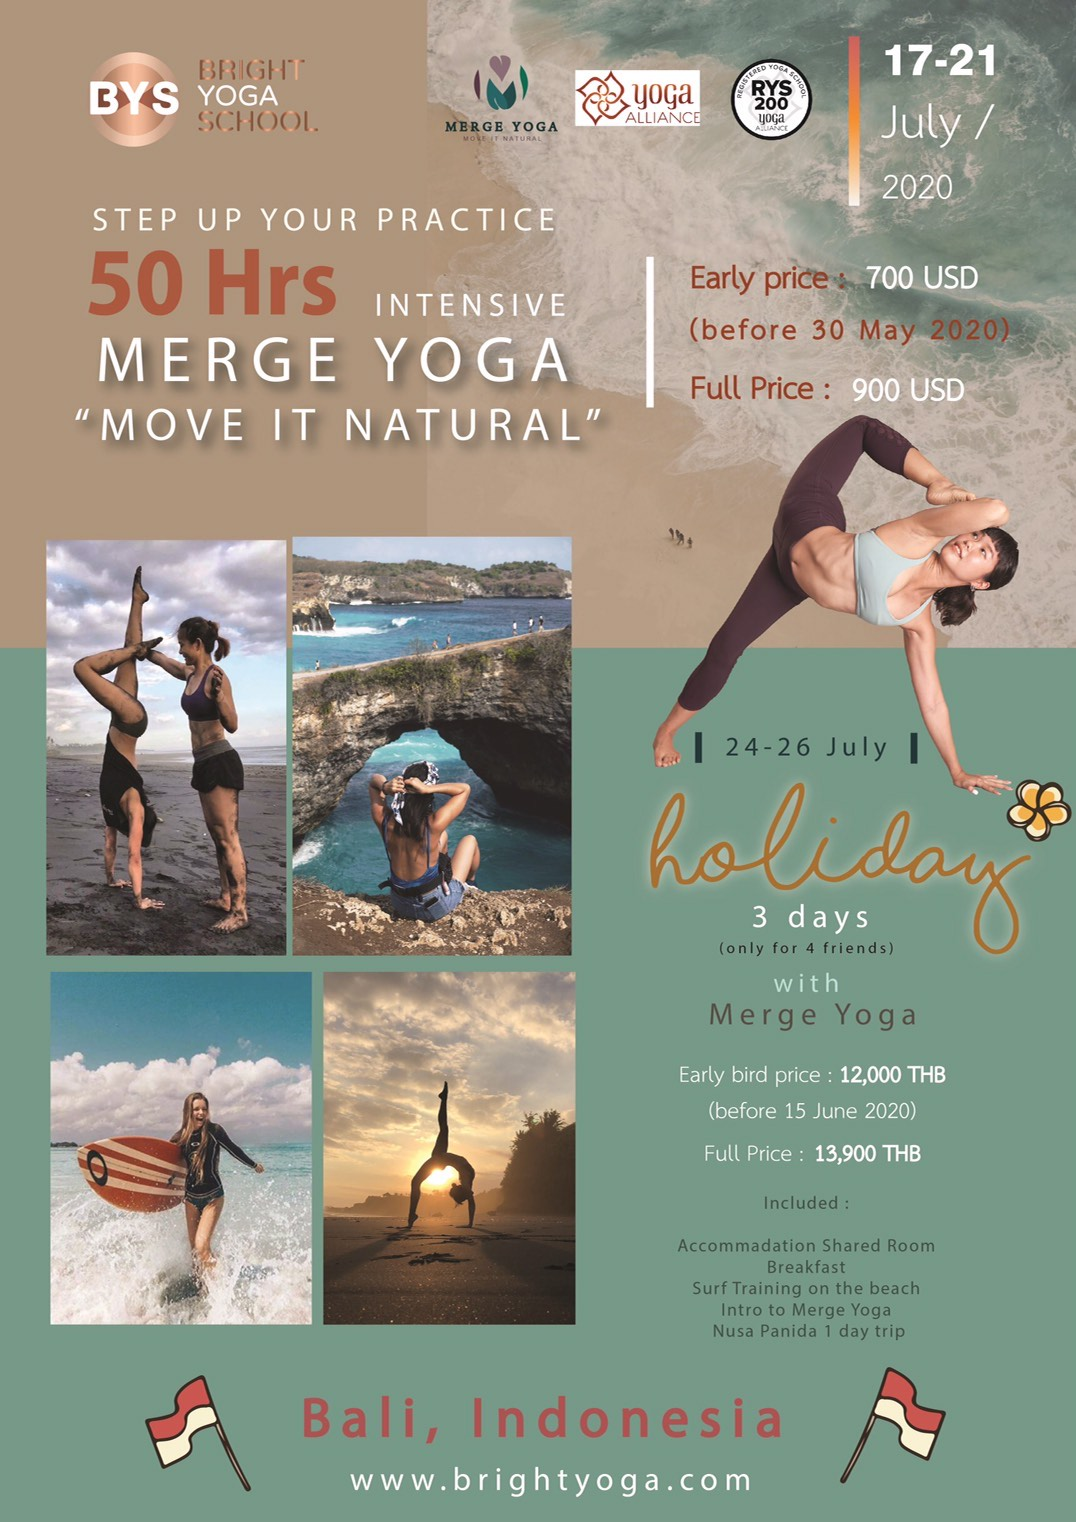 50Hrs Merge Yoga Holiday in Bali July